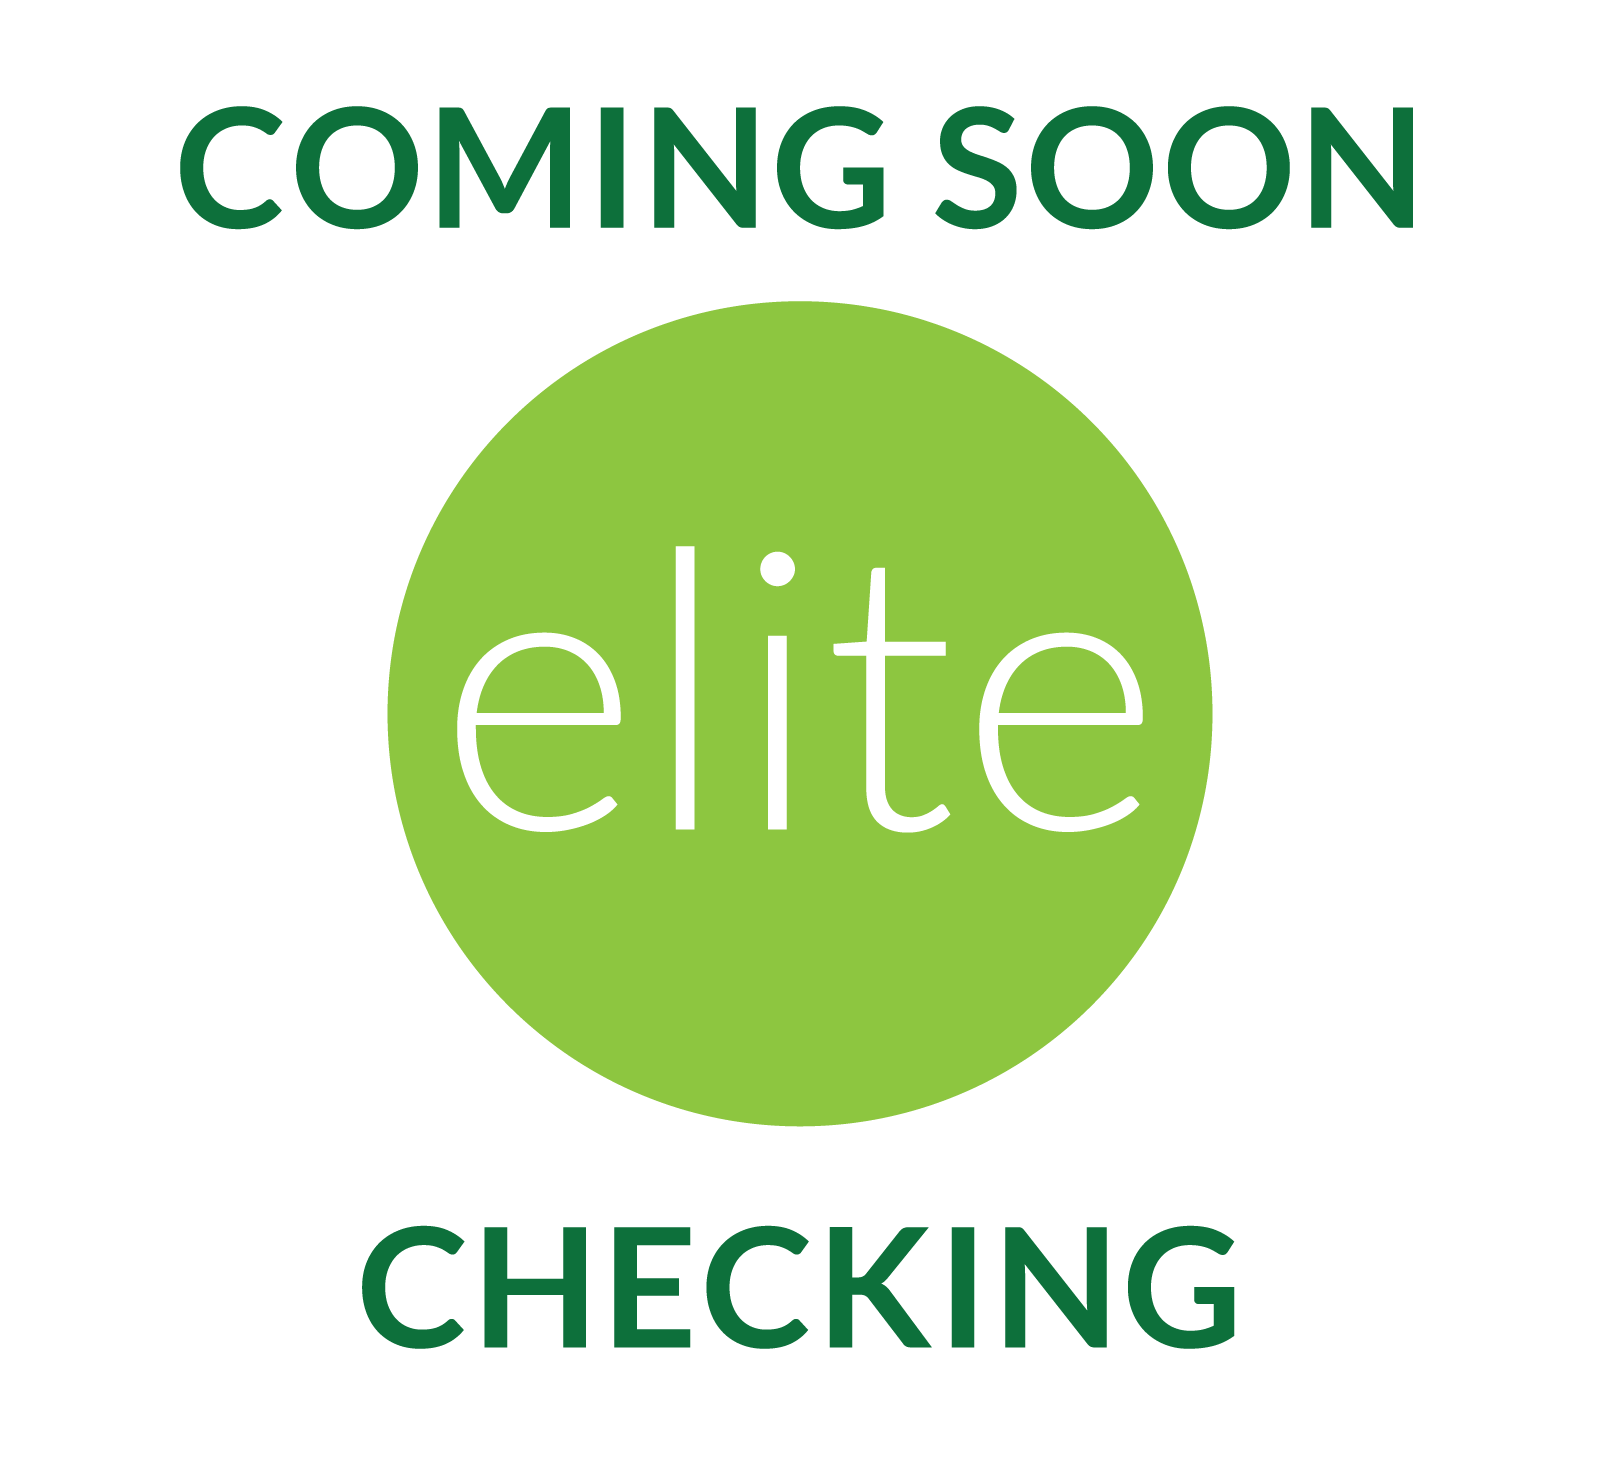 Elite Checking Coming Soon